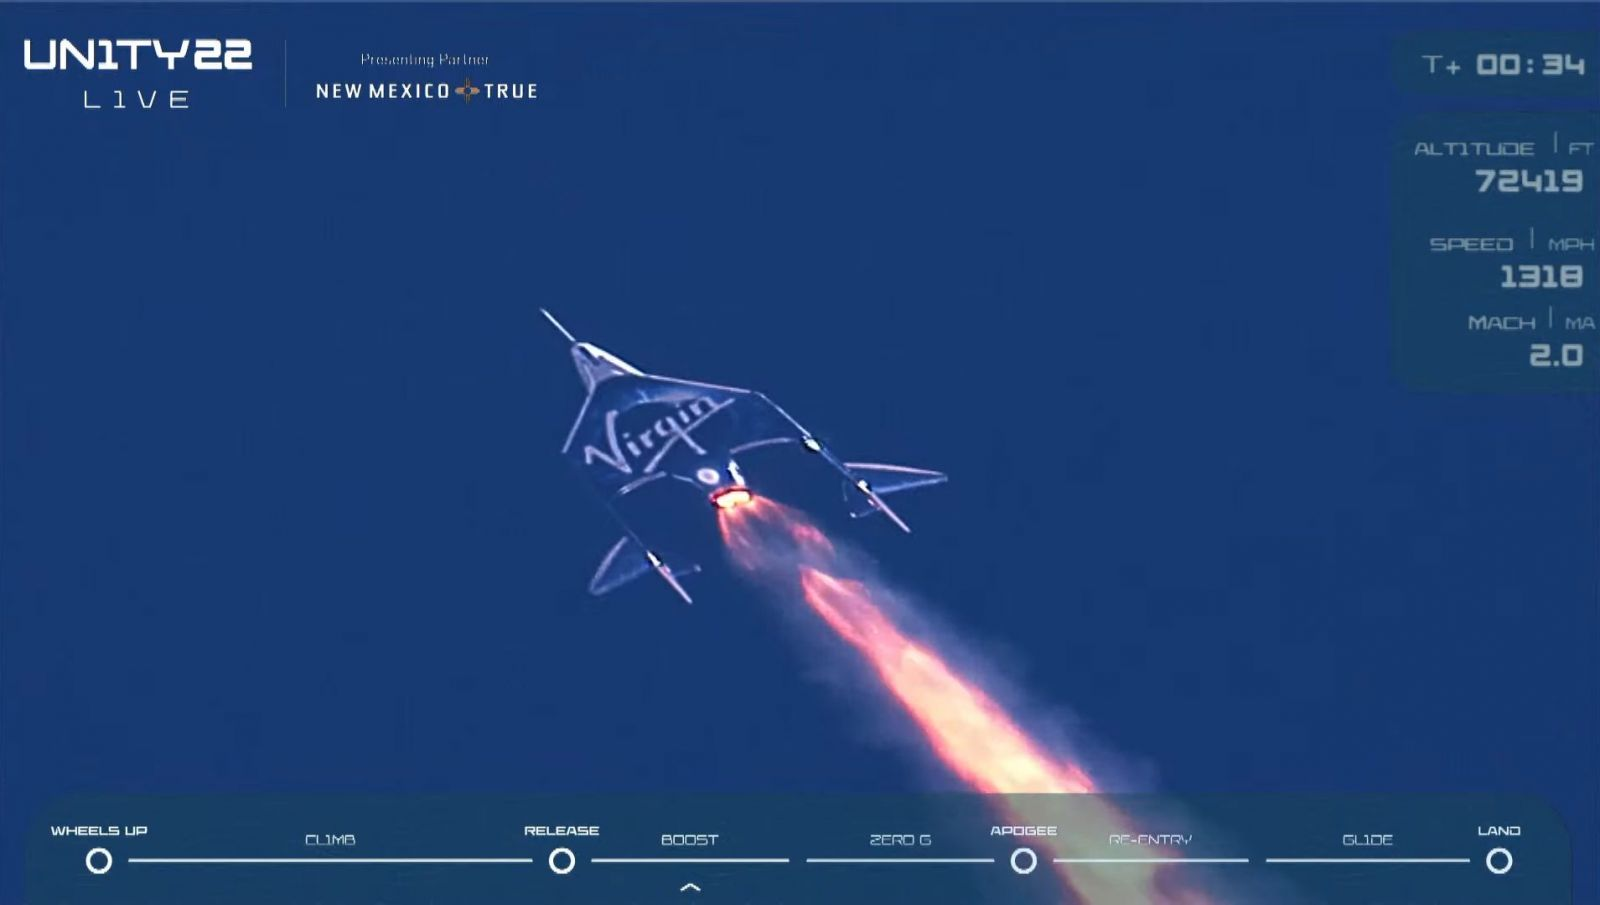 VSS Unity fires its hybrid rocket motor to place it on a suborbital trajectory into space. Aboard were two pilots and four mission specialists, including Virgin Galactic's founder, Richard Branson. Credit: Virgin Galactic